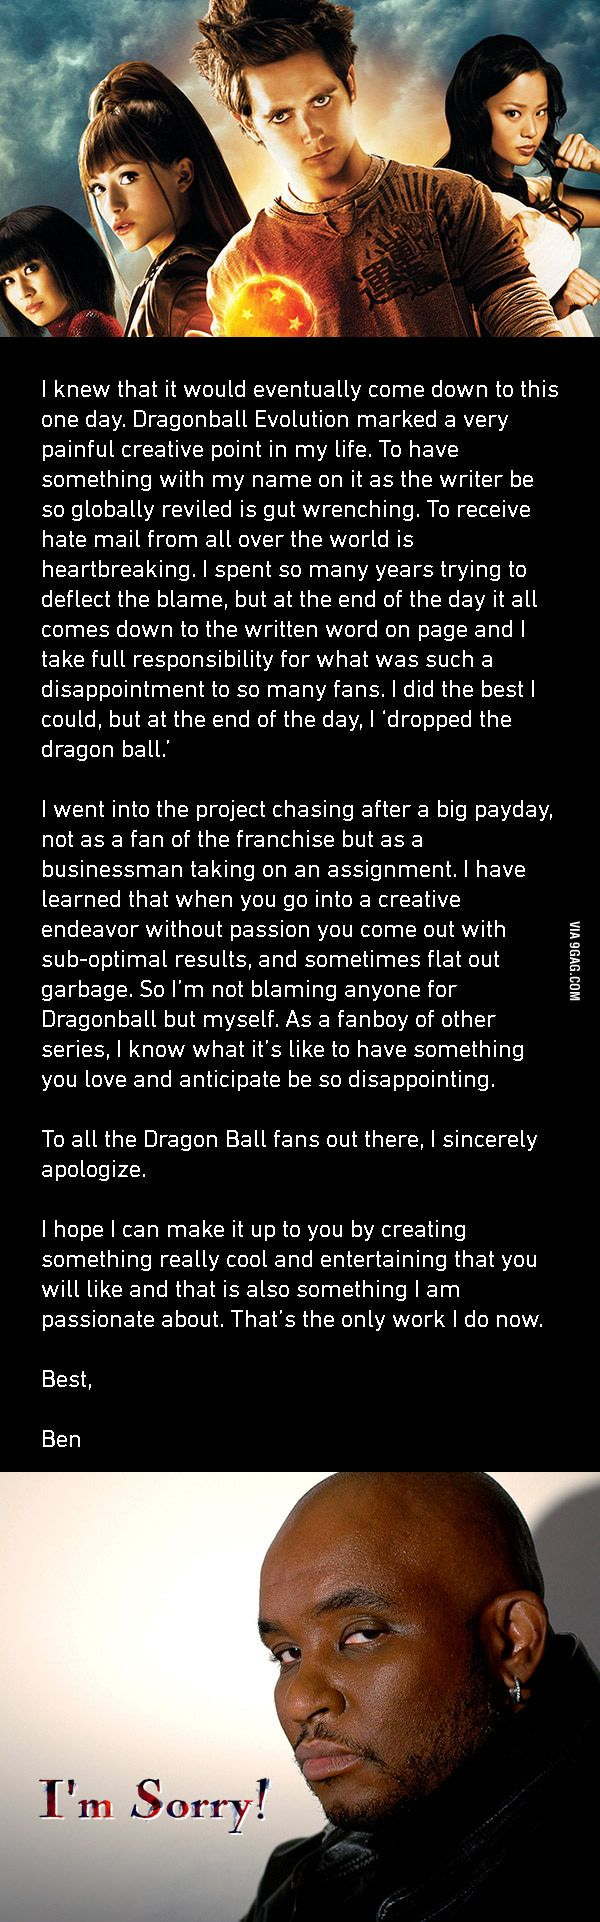 7 years after Dragonball Evolution', Screenwriter Ben Ramsey Writes A Sincere Apology... Is he for real!? Lol